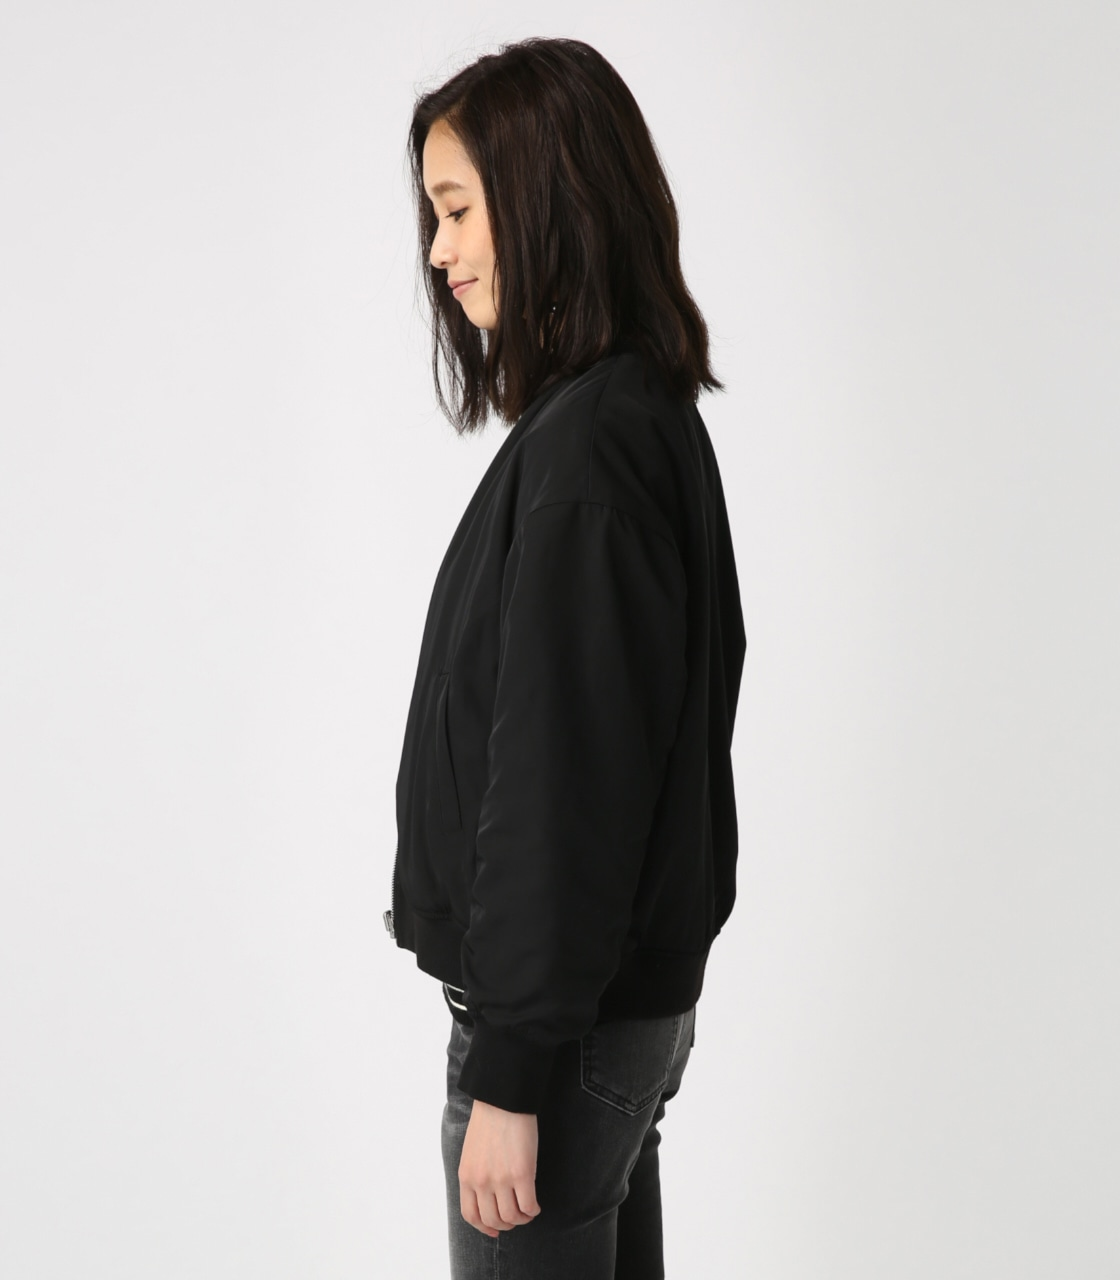 【AZUL BY MOUSSY】リバーシブルボアブルゾン 詳細画像 BLK 6